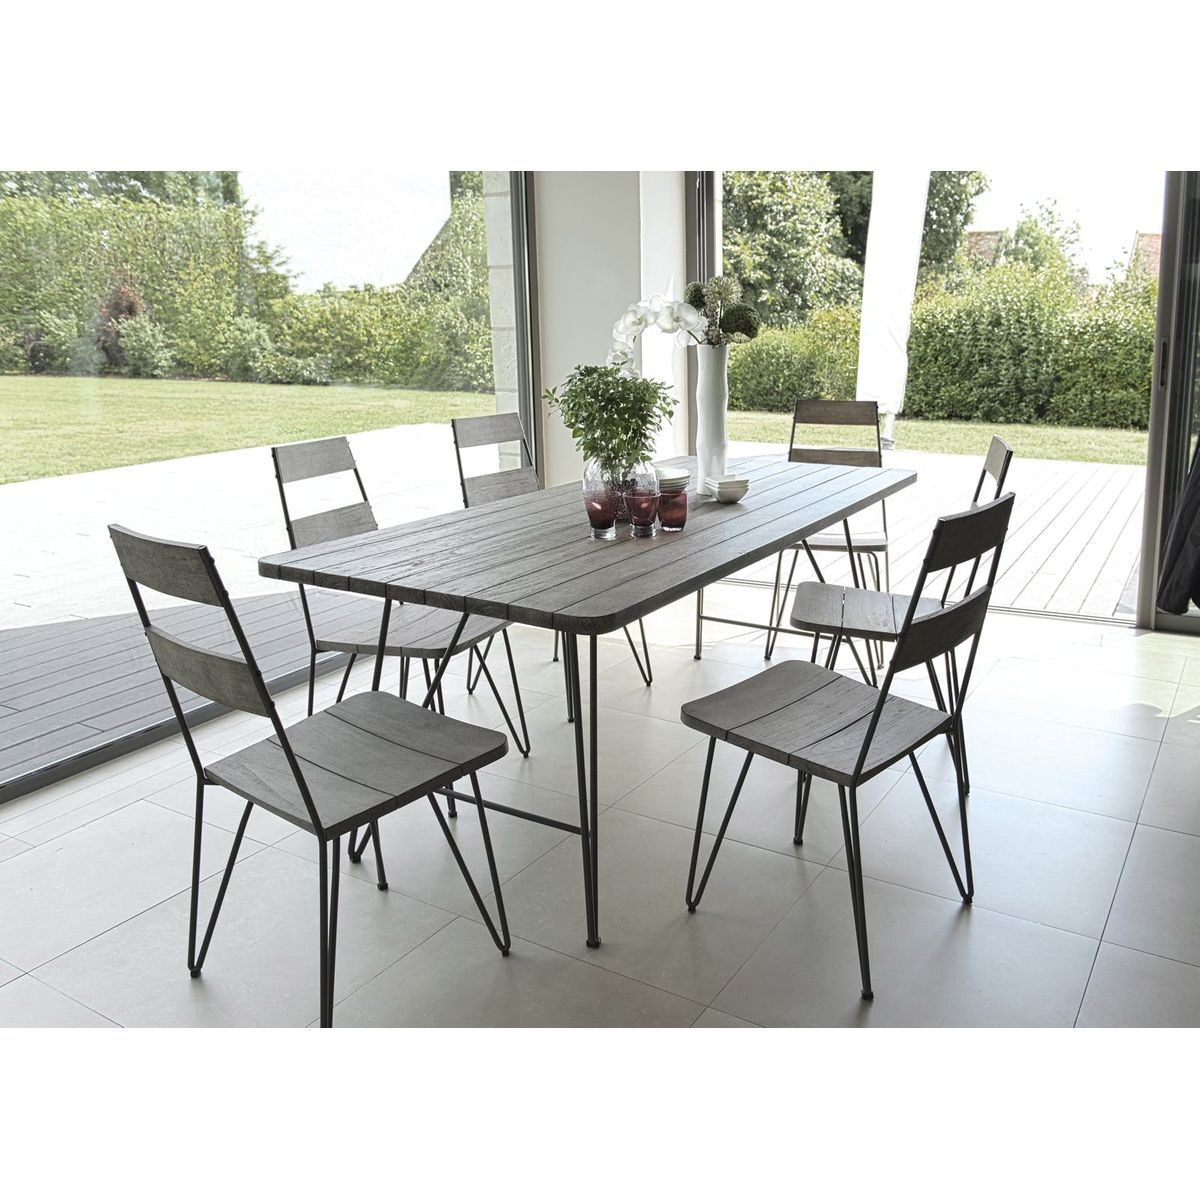 Salon de Jardin Table Teck 200x90cm + 6 chaises DETROIT ref ...